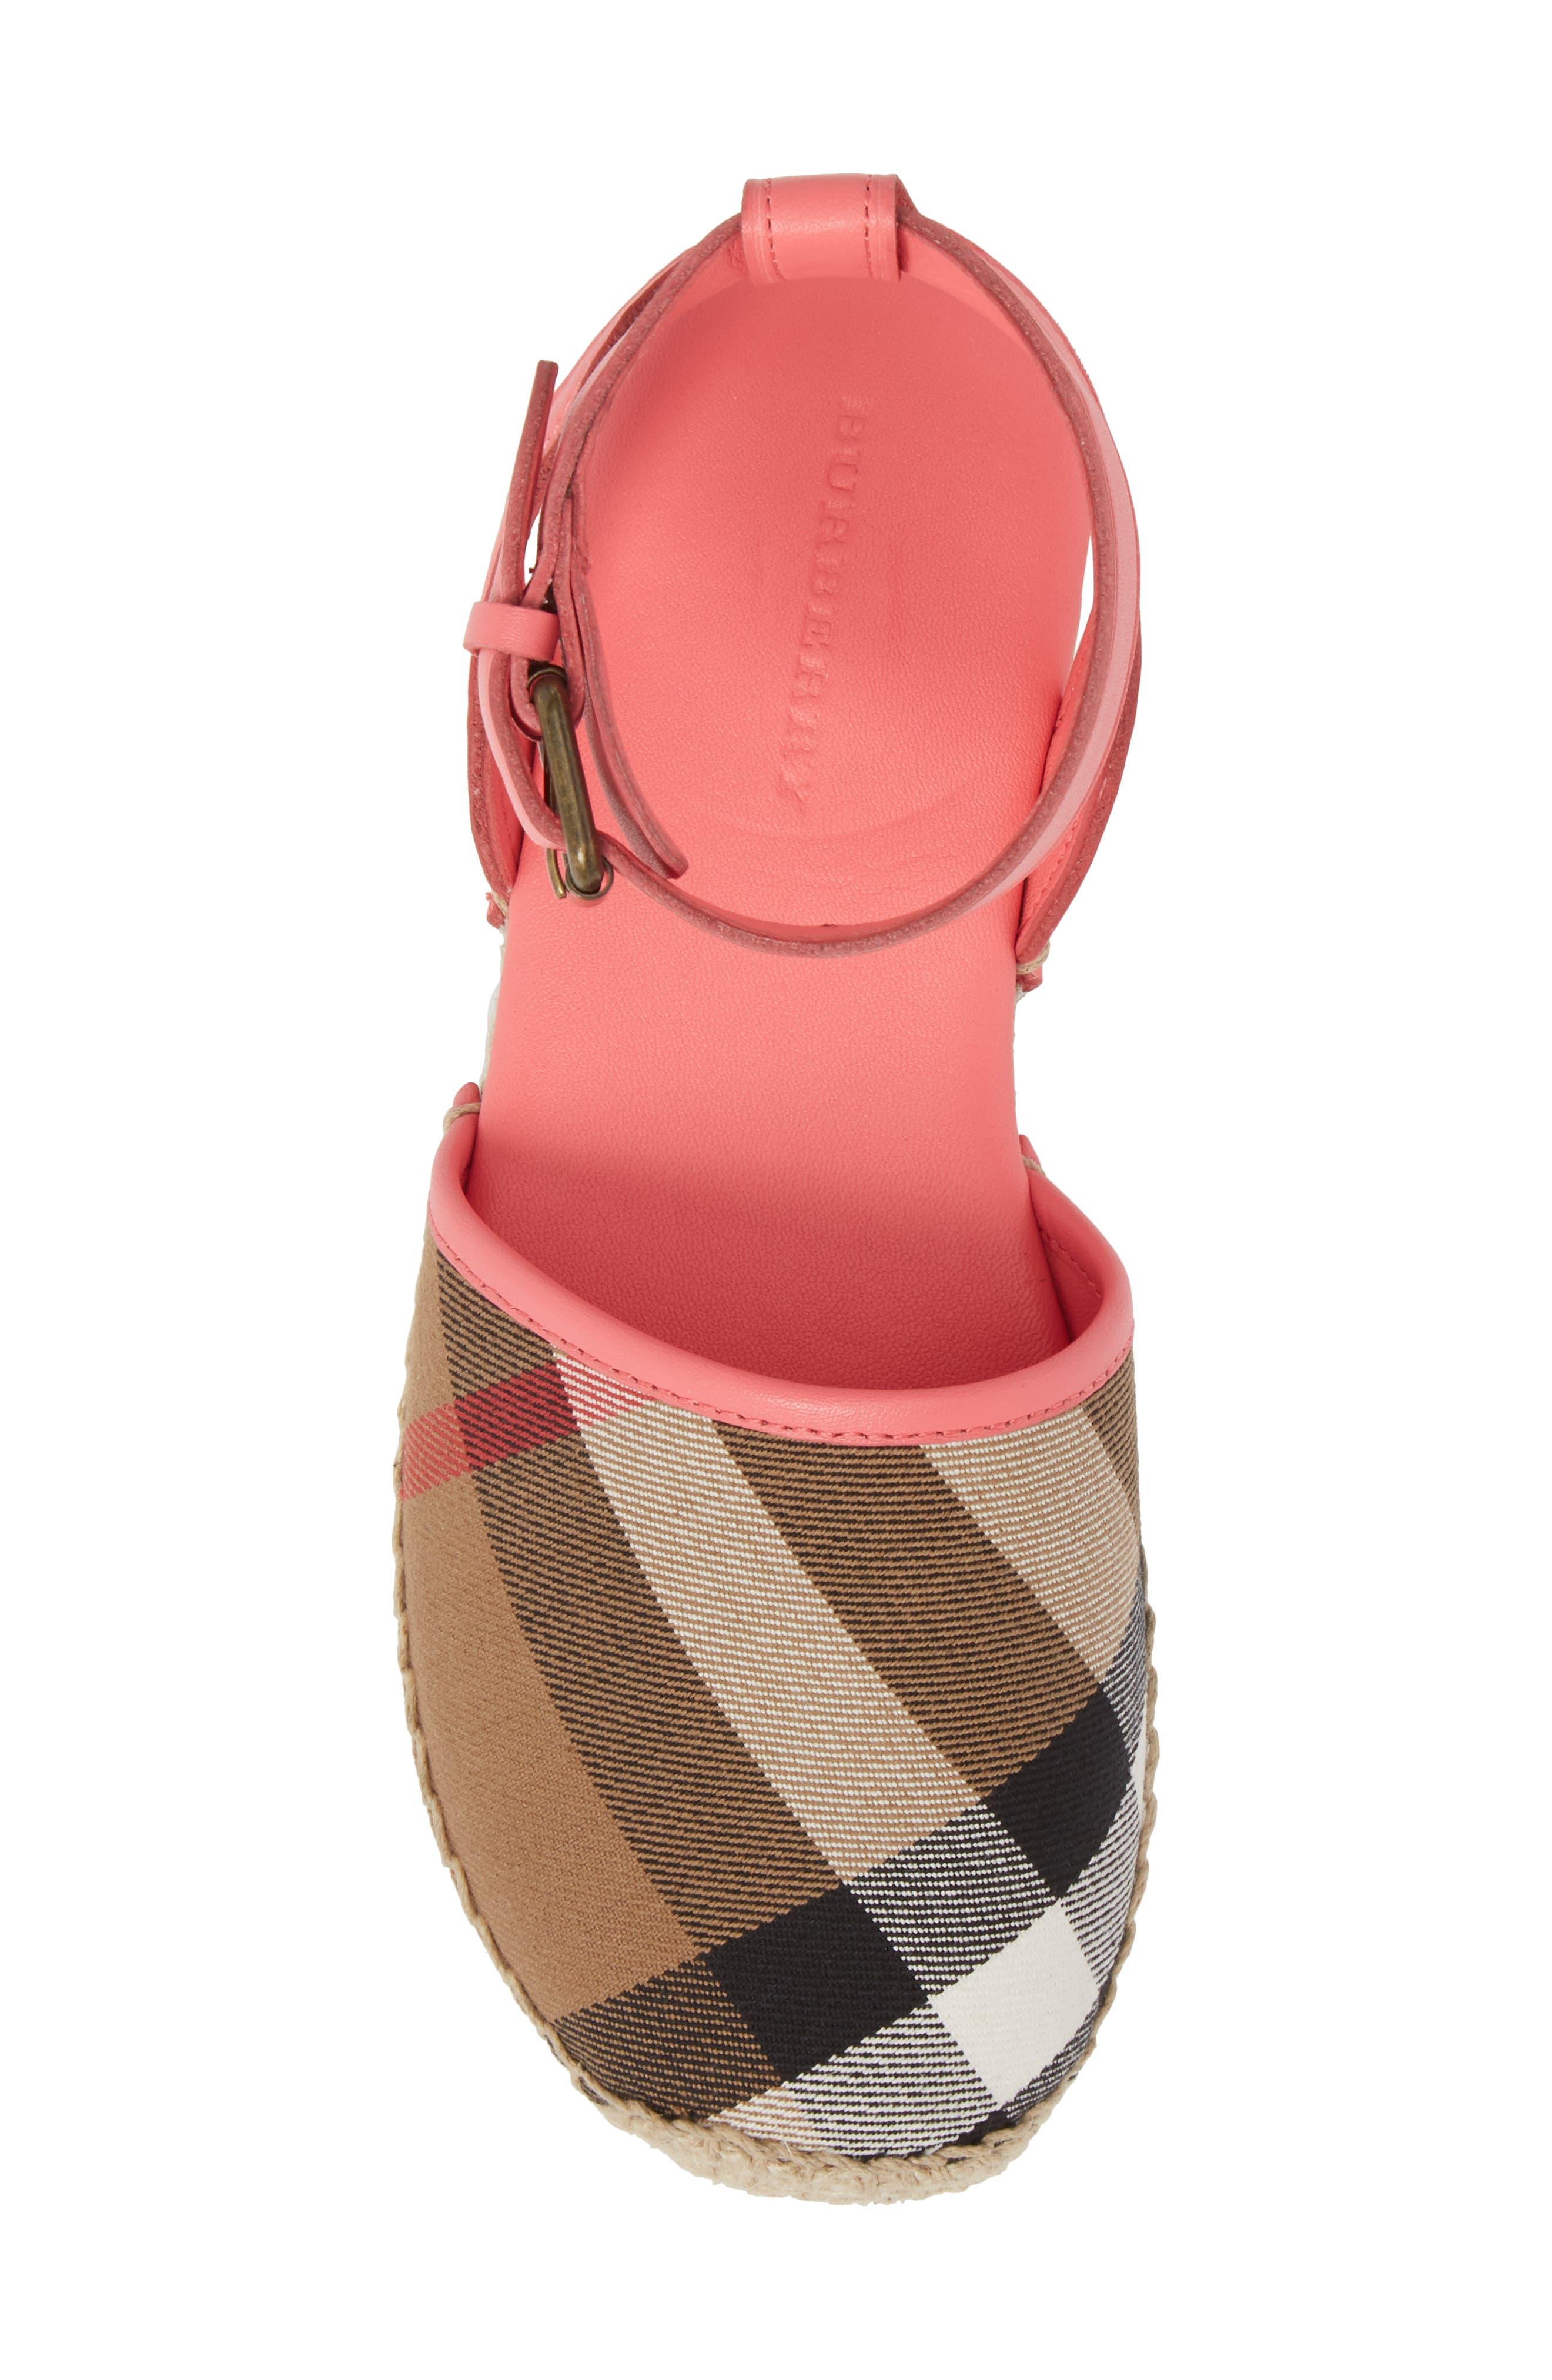 New Perth Espadrille Sandal,                             Alternate thumbnail 5, color,                             Bright Peony Rose